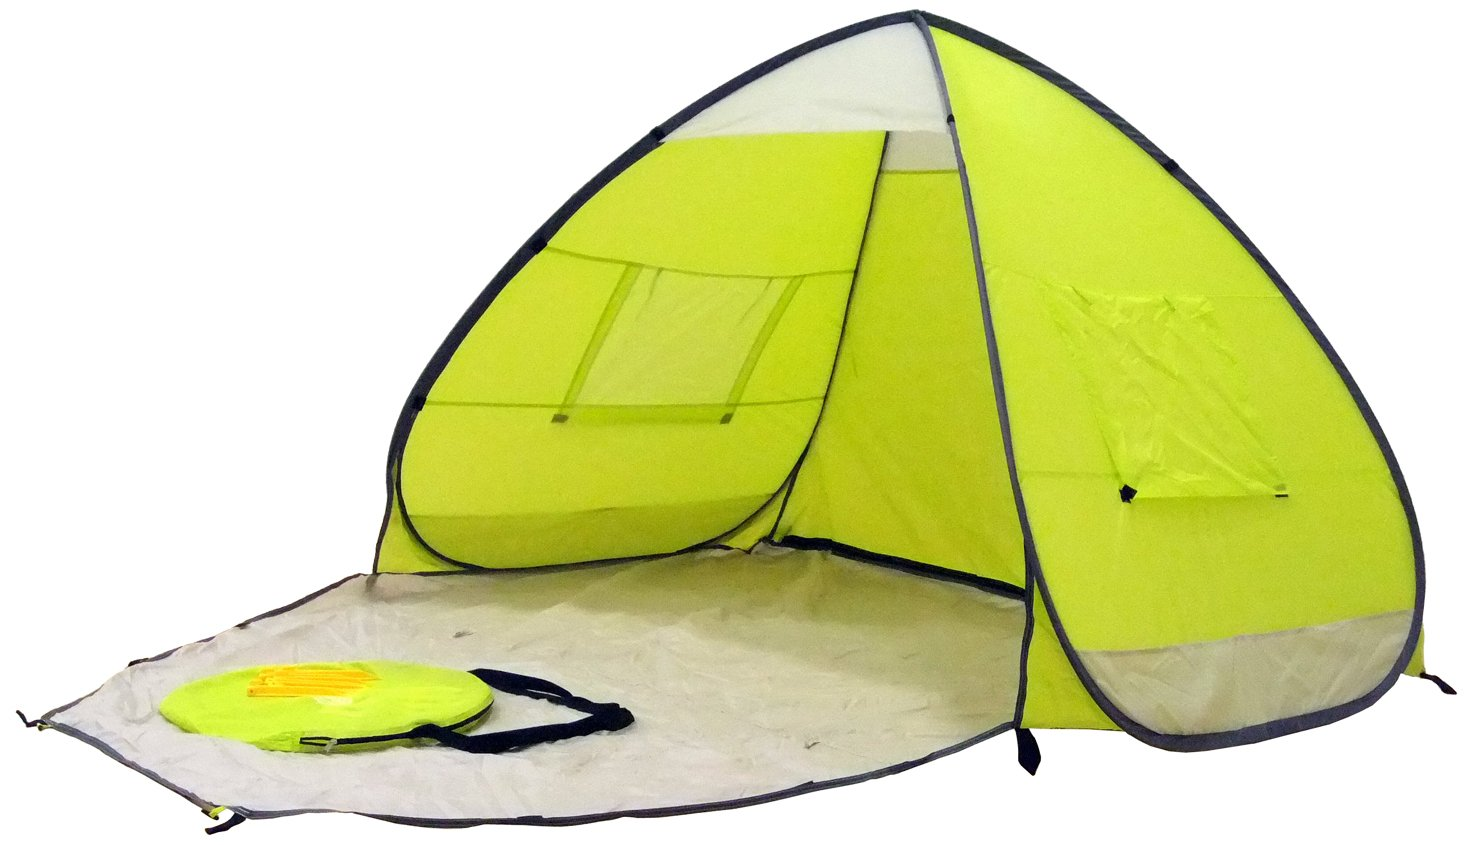 Amazon.com  Genji Sports Speedway Instant Beach Tent and Changing Room Apple Green  Family Tents  Sports u0026 Outdoors  sc 1 st  Amazon.com & Amazon.com : Genji Sports Speedway Instant Beach Tent and Changing ...